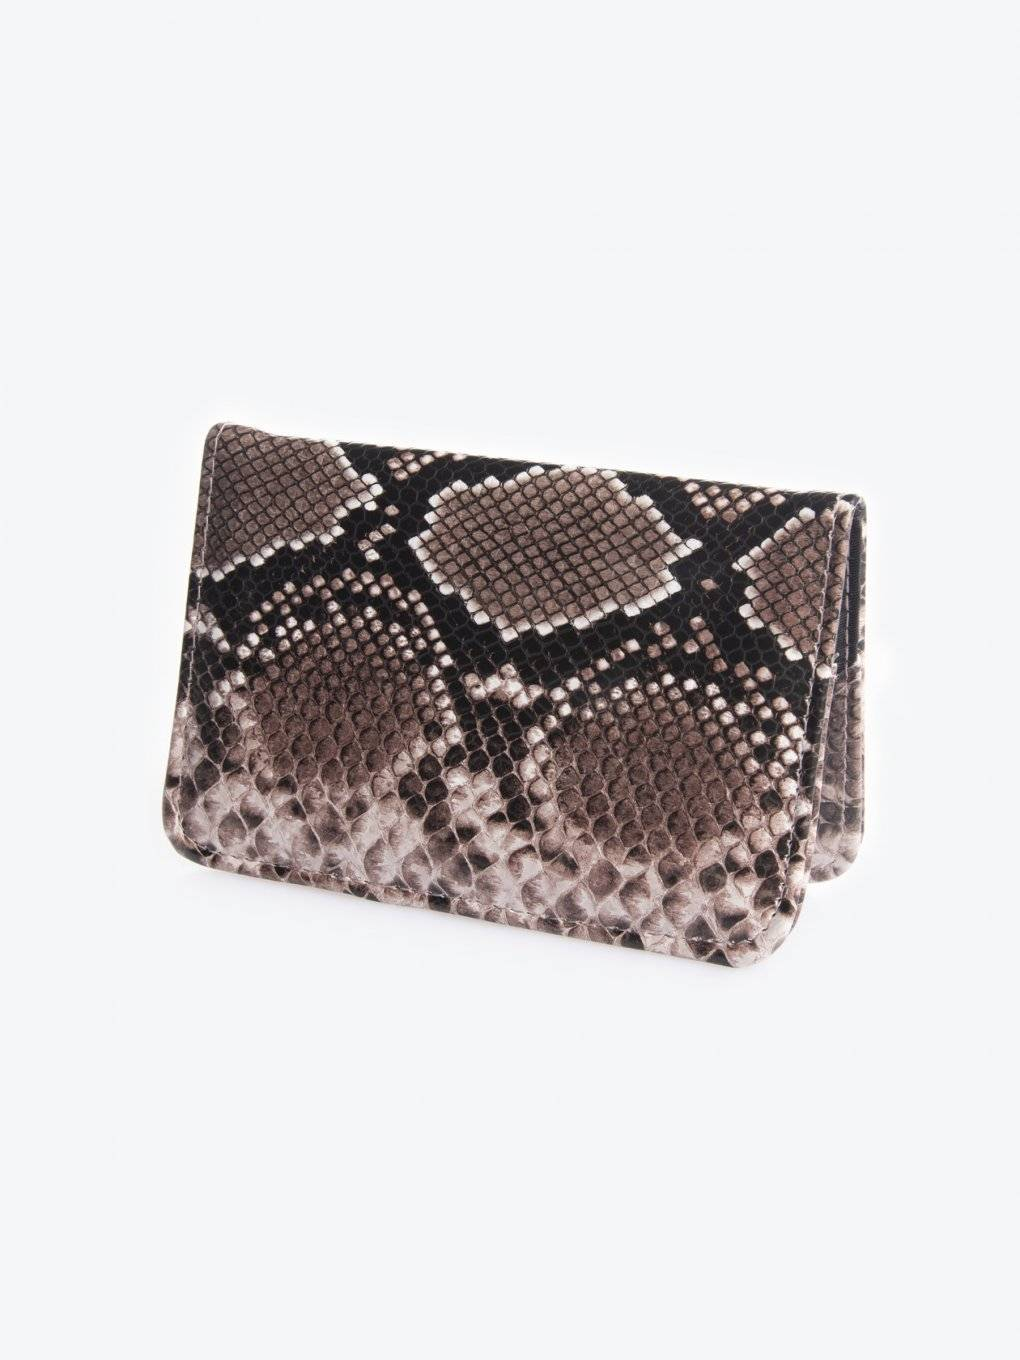 Passport case with snake skin effect